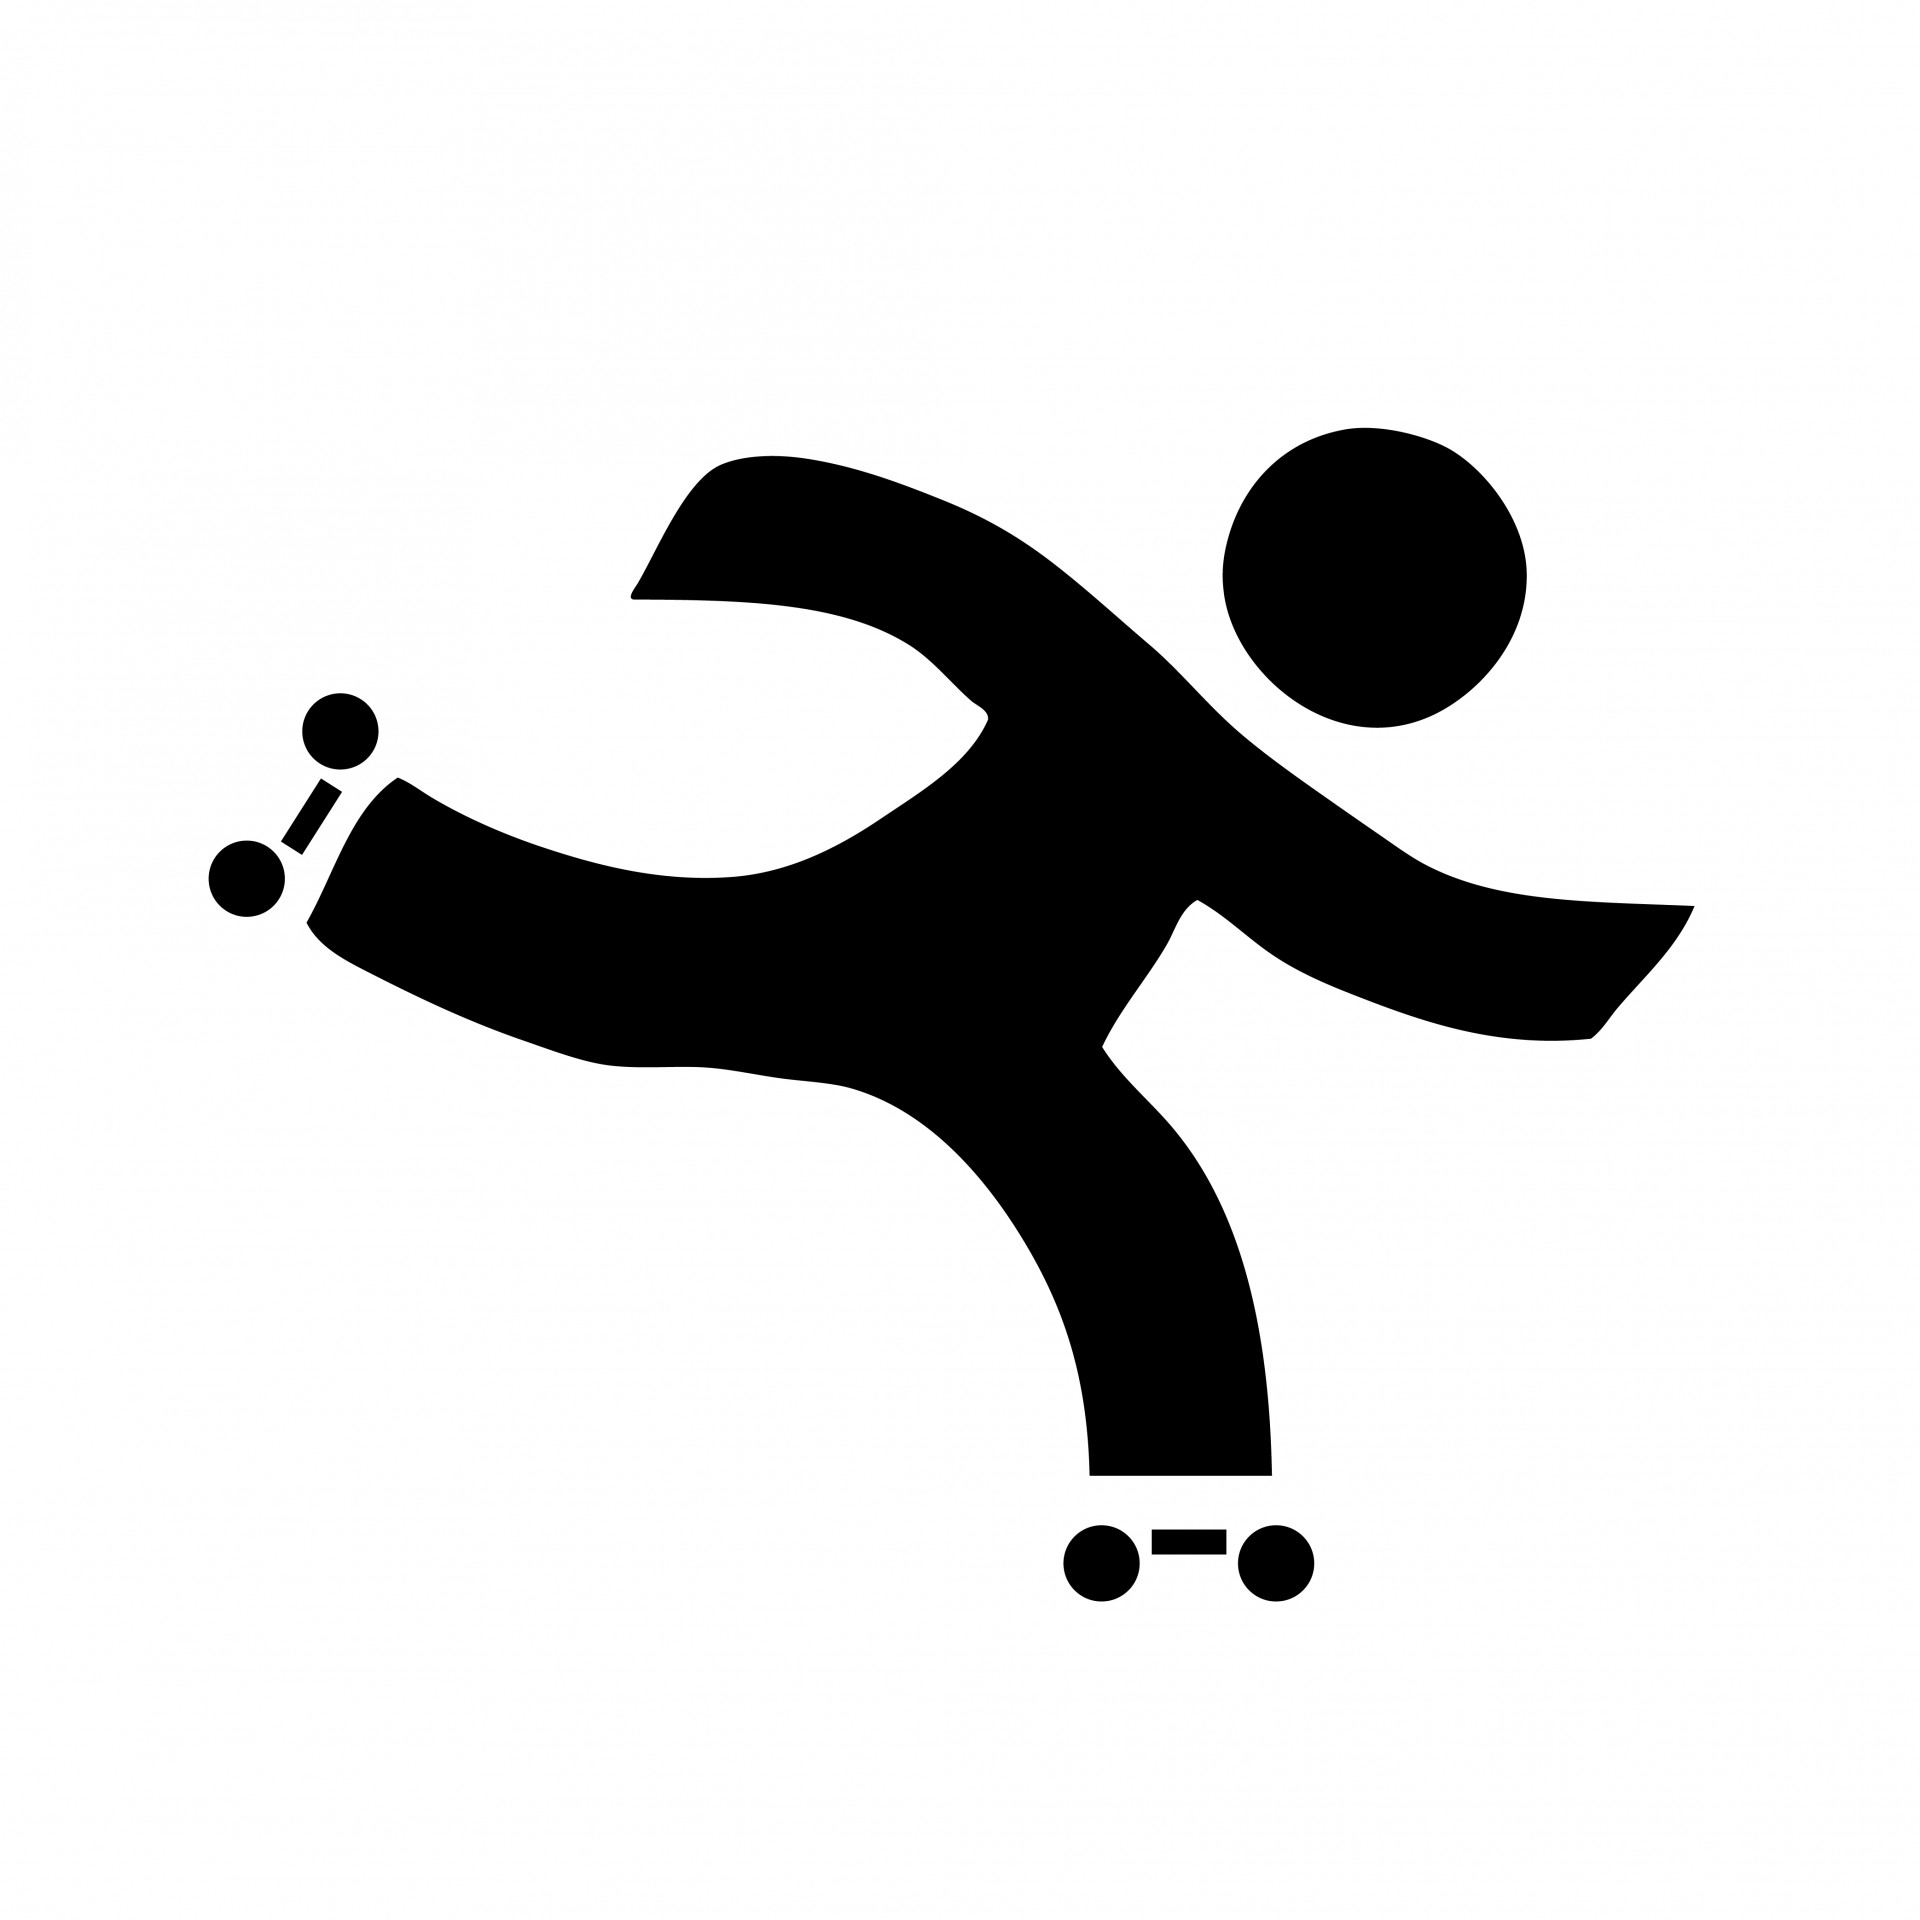 Skating clipart. Roller free stock photo